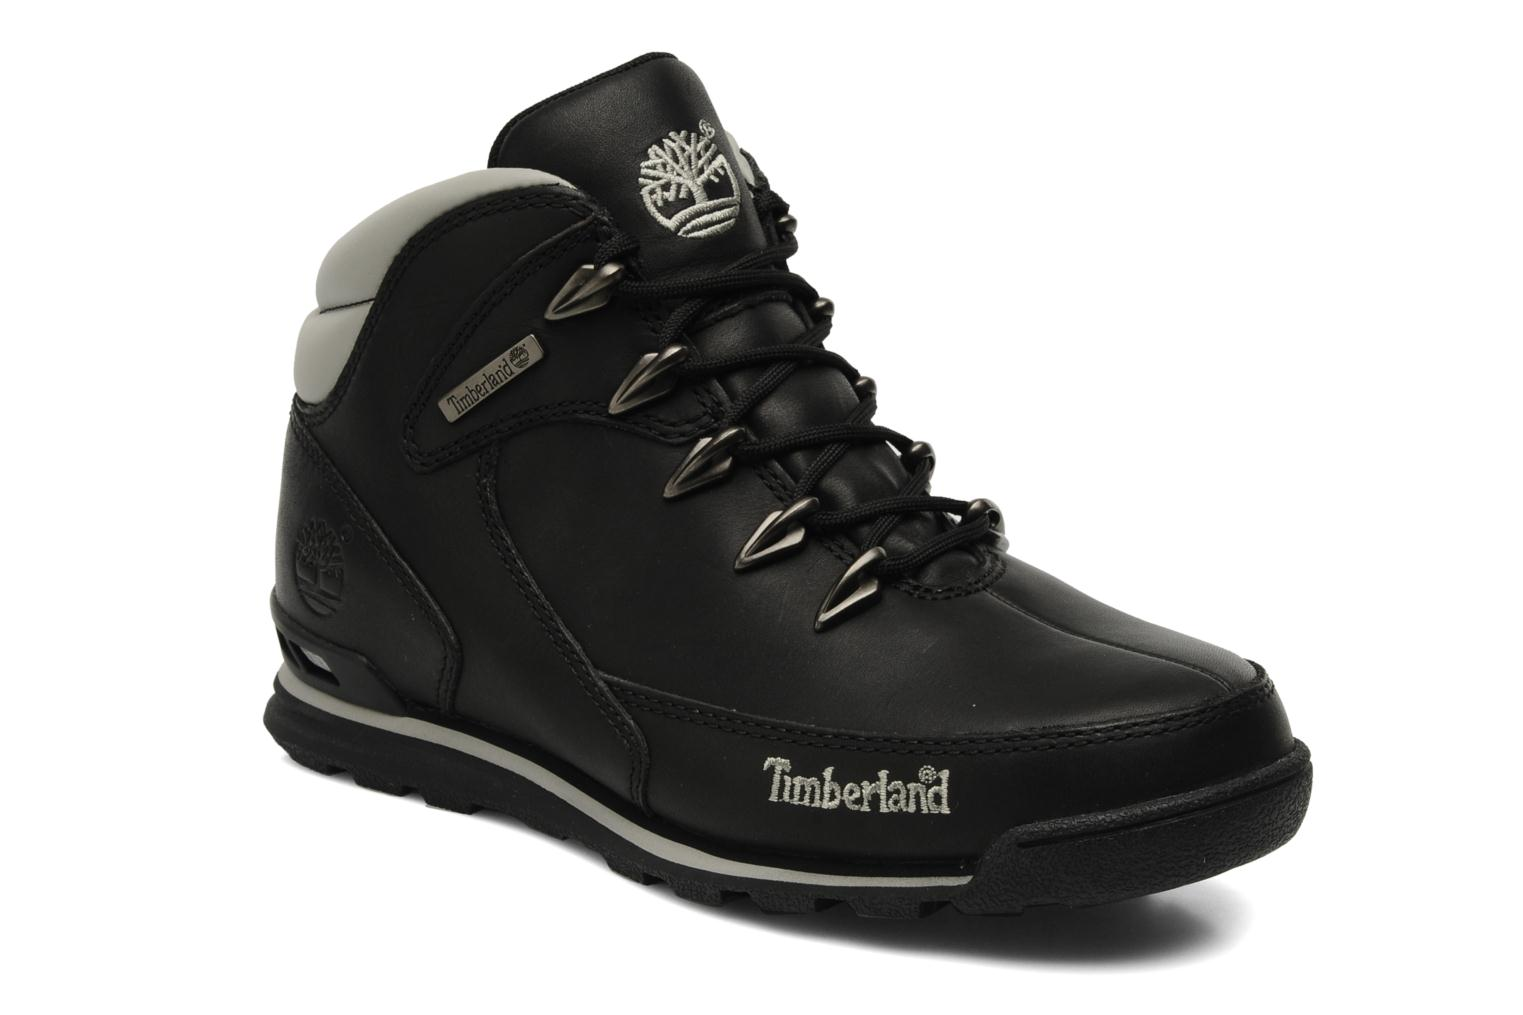 Euro Rock Hiker Black leather